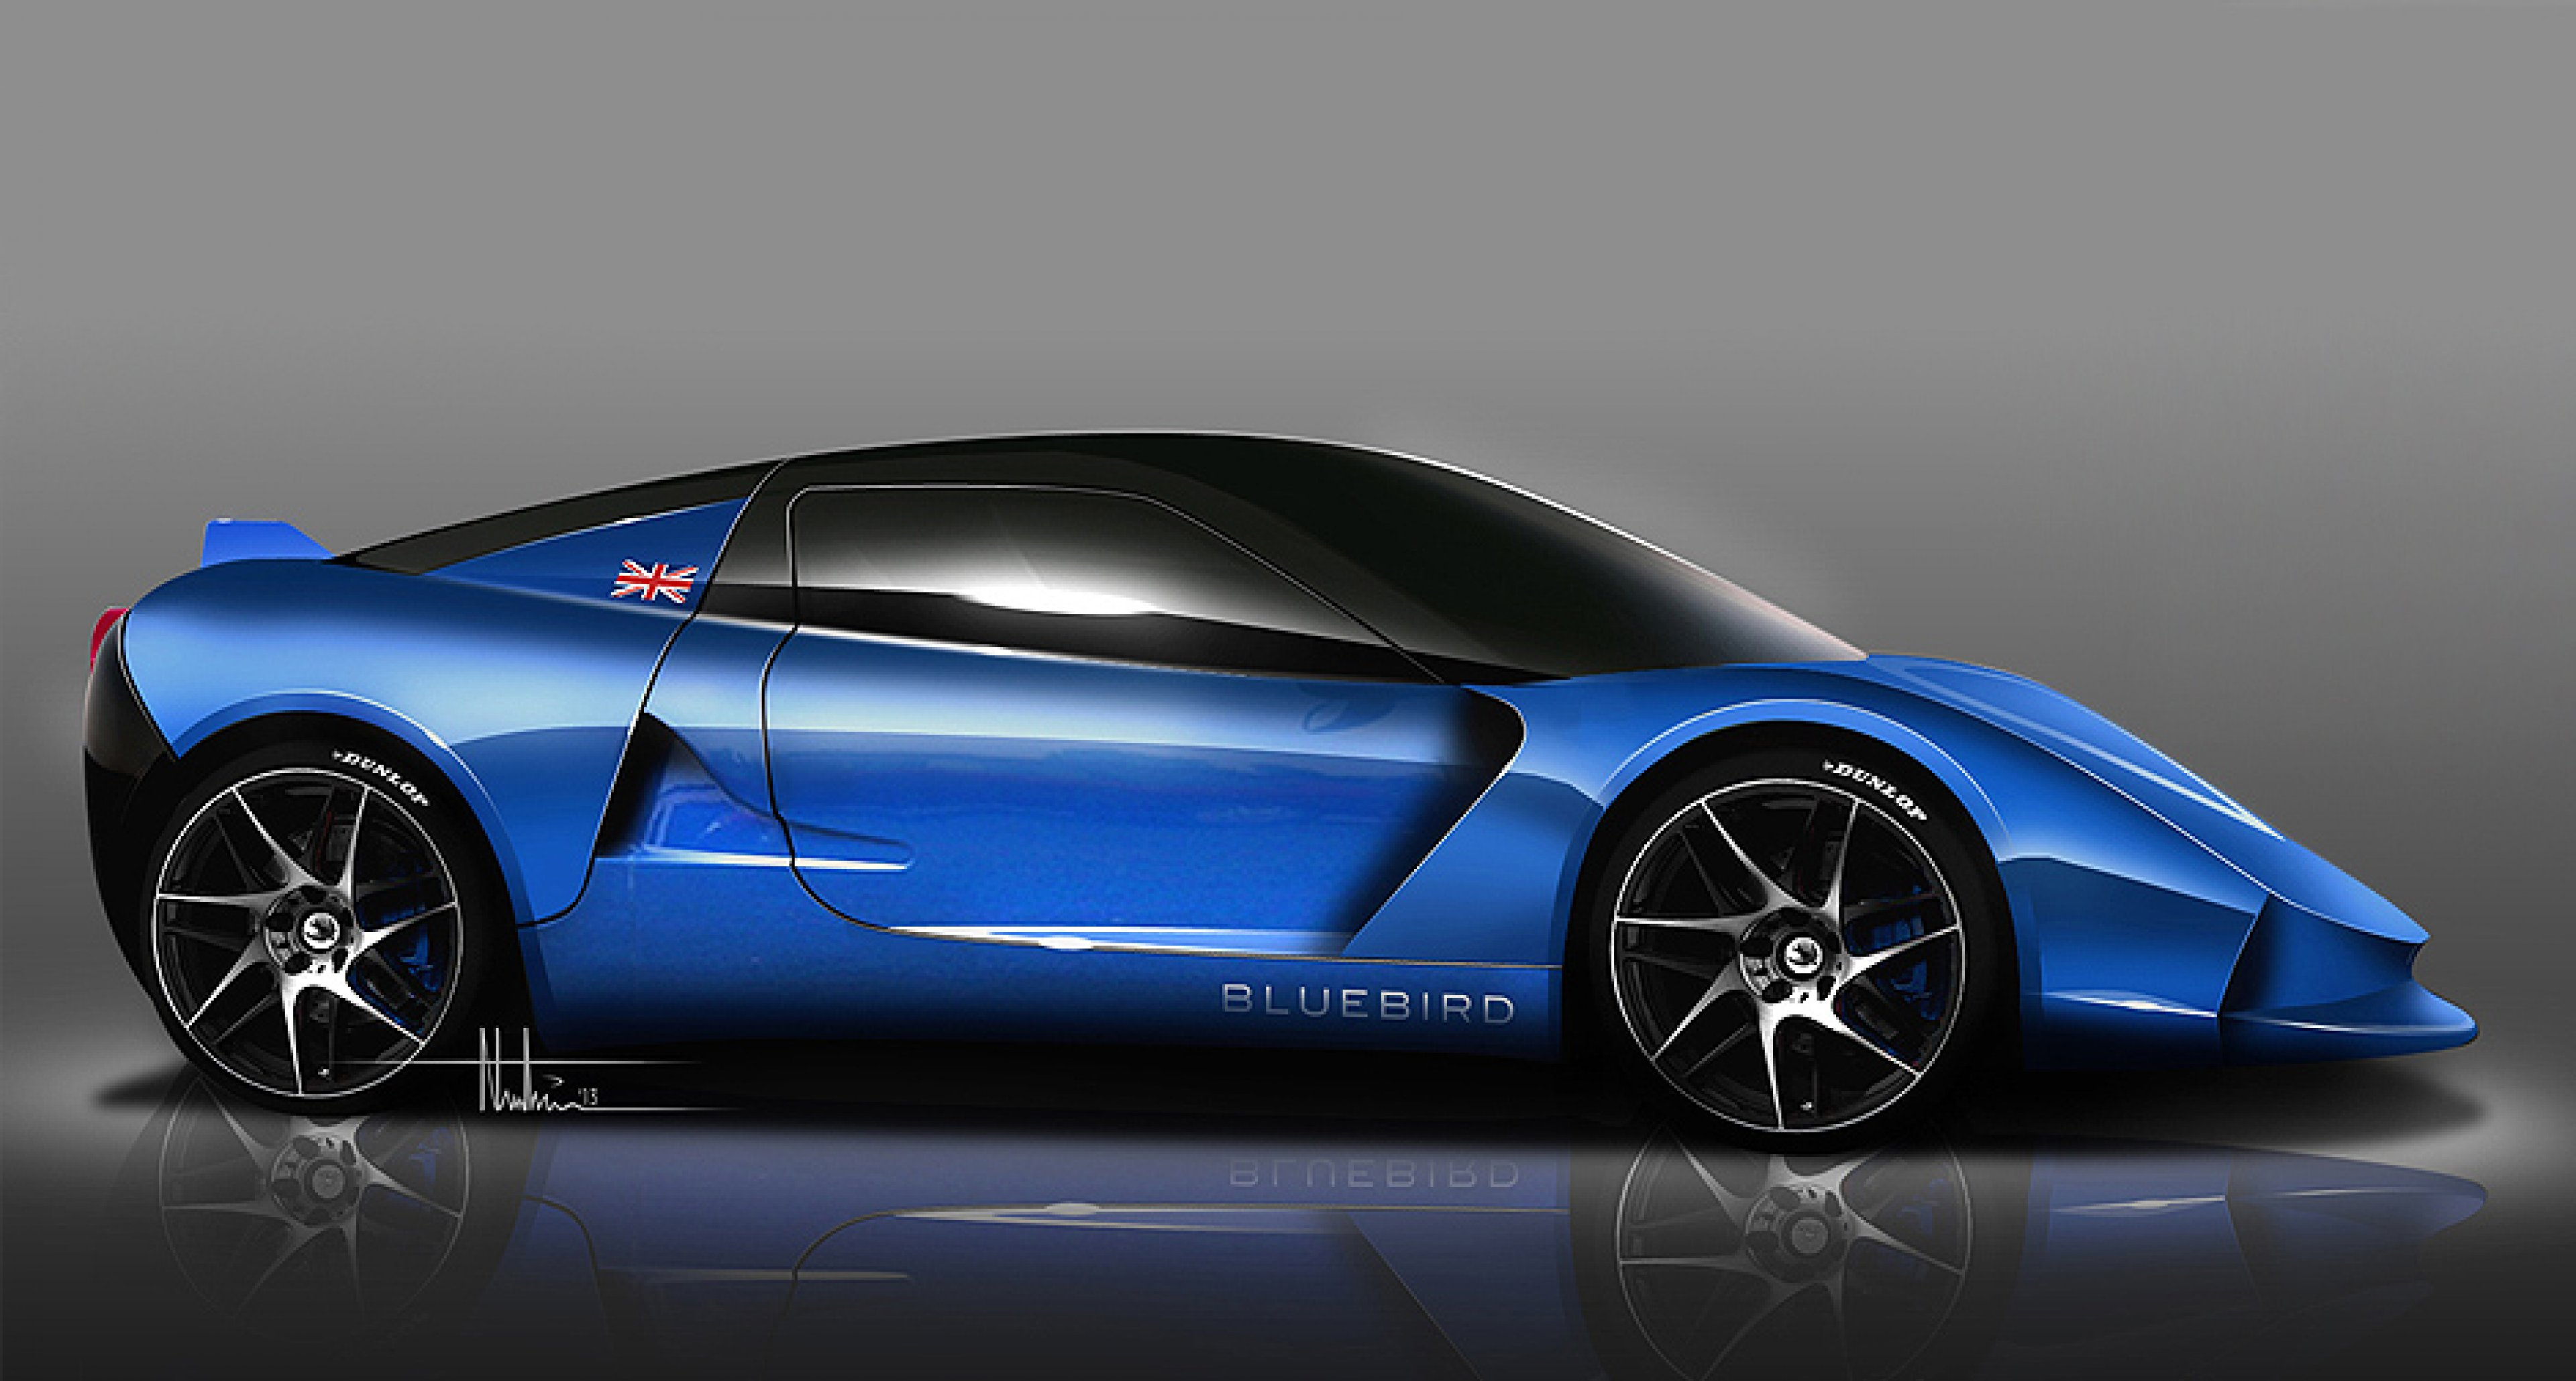 Electric Blue 50 Bluebird Sports Cars To Go On